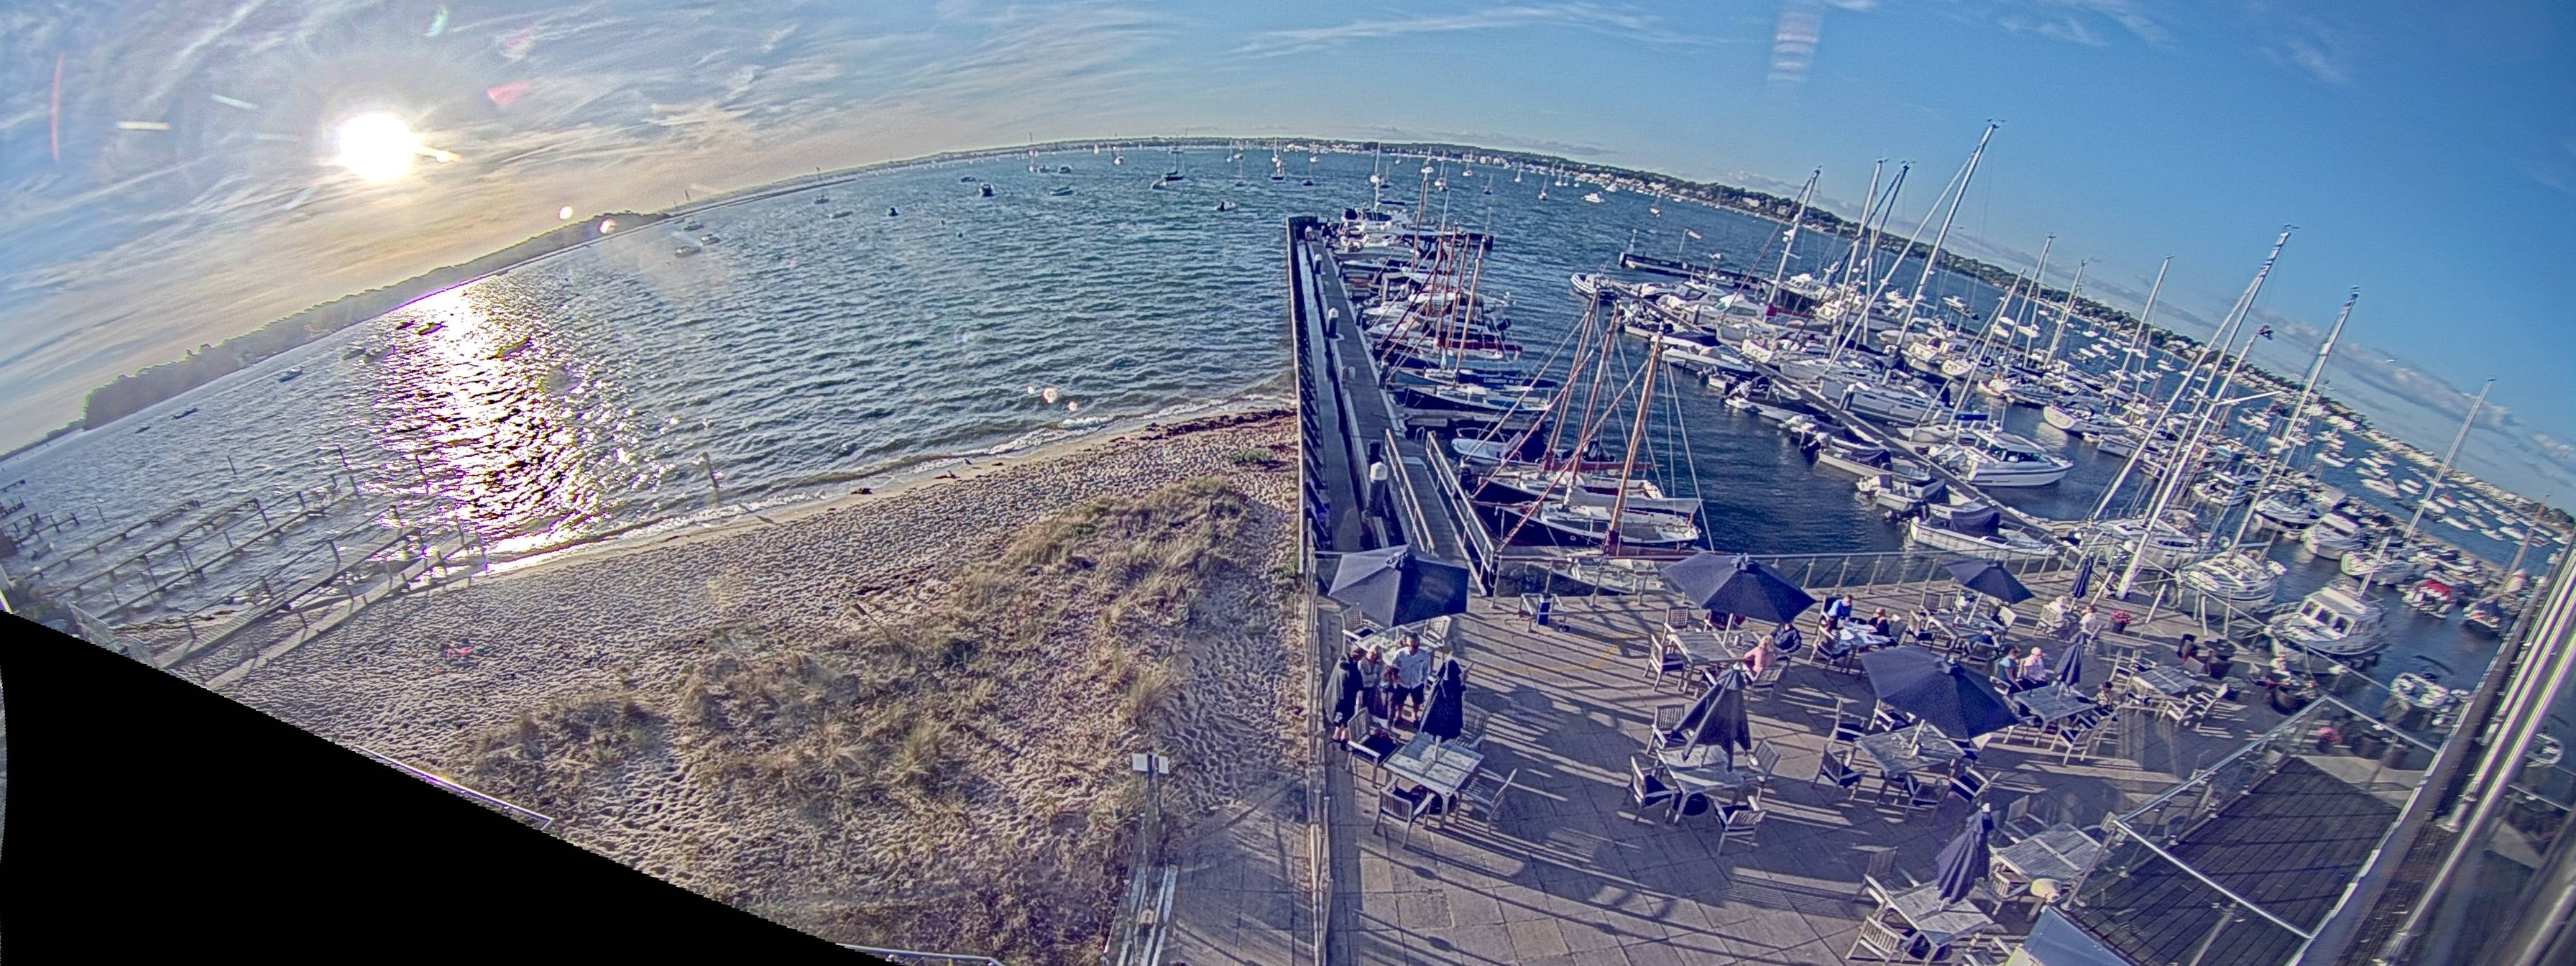 Current webcam image